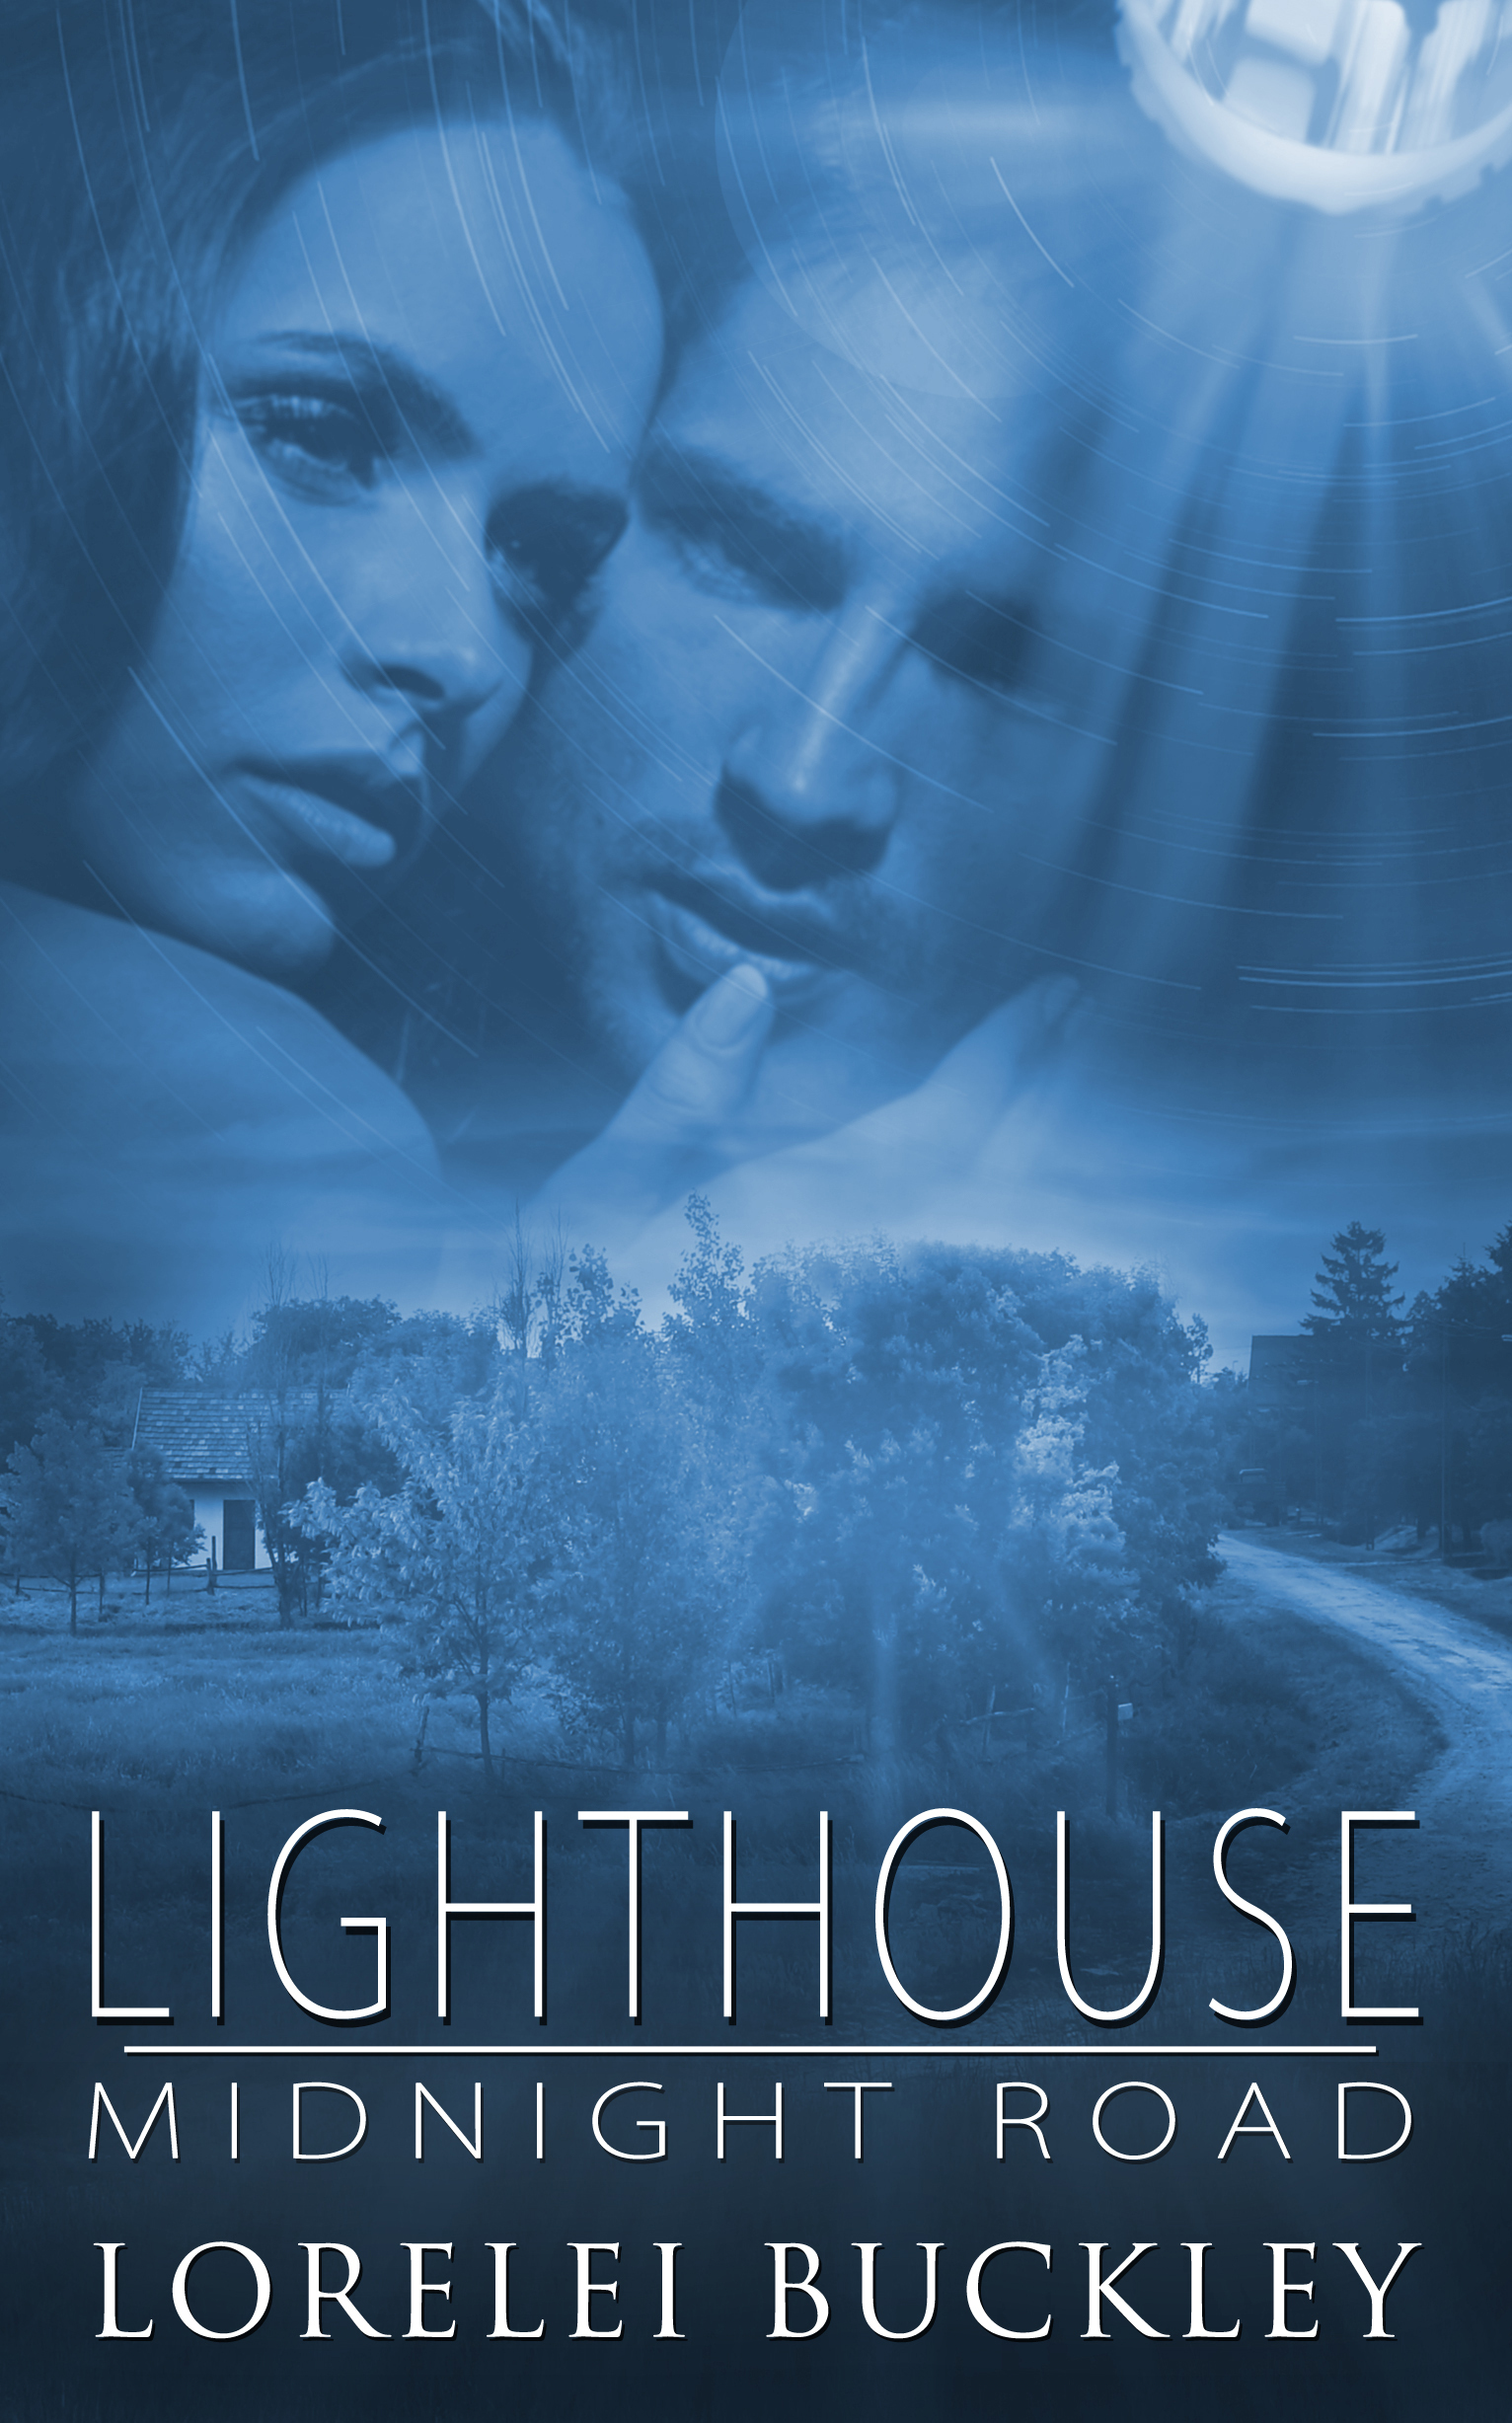 Lighthouse: Midnight Road - Book One (and standalone) -SFR Lorelei Buckley